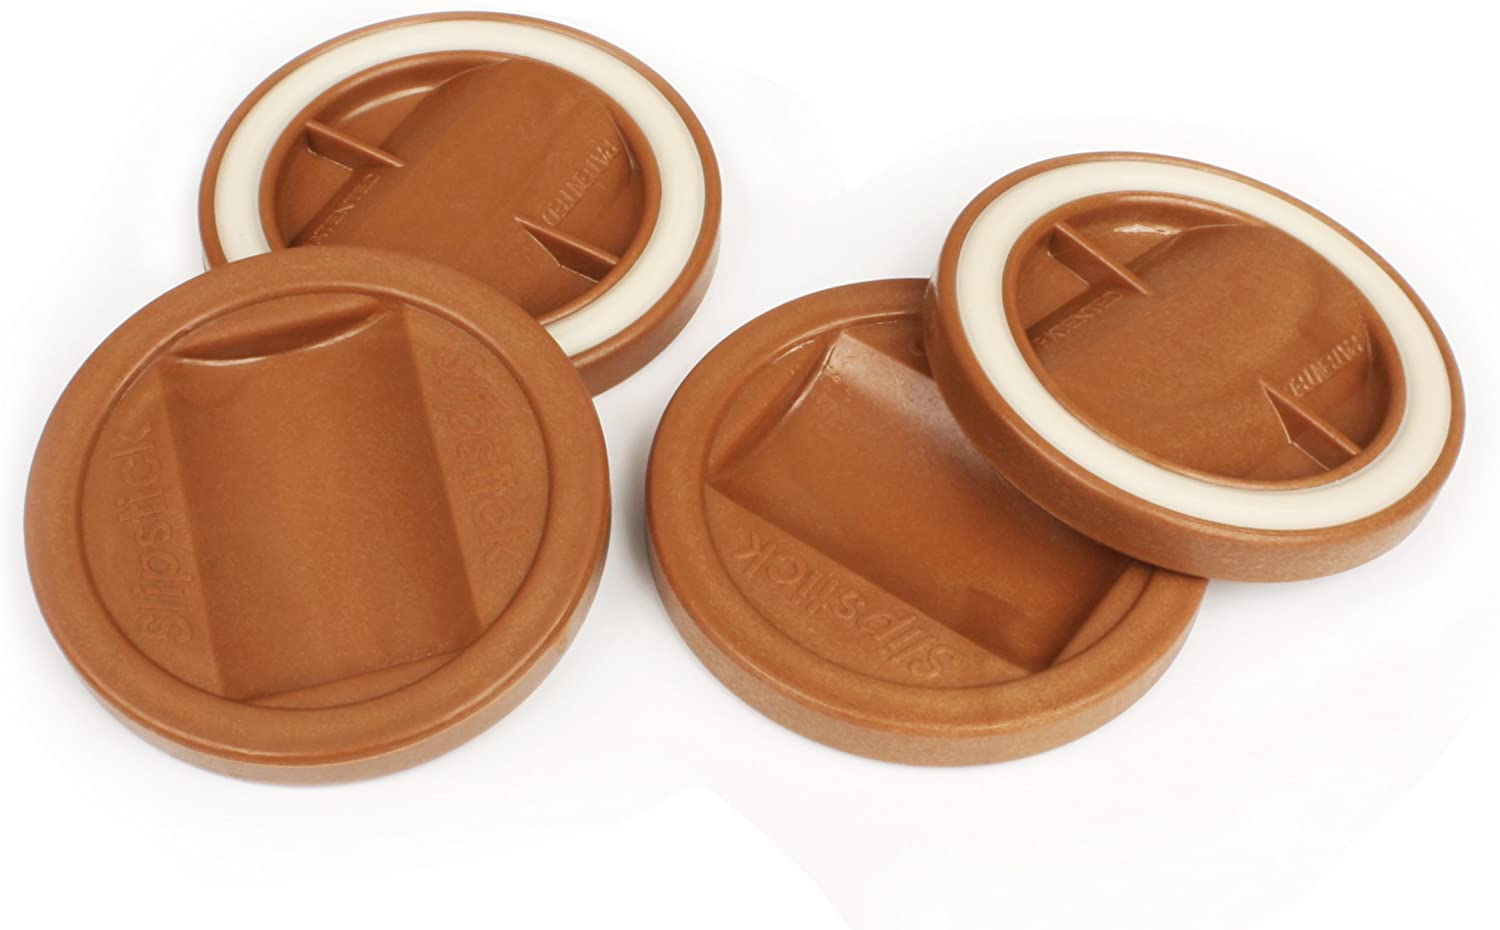 Bed Roller Chocolate Set of 4